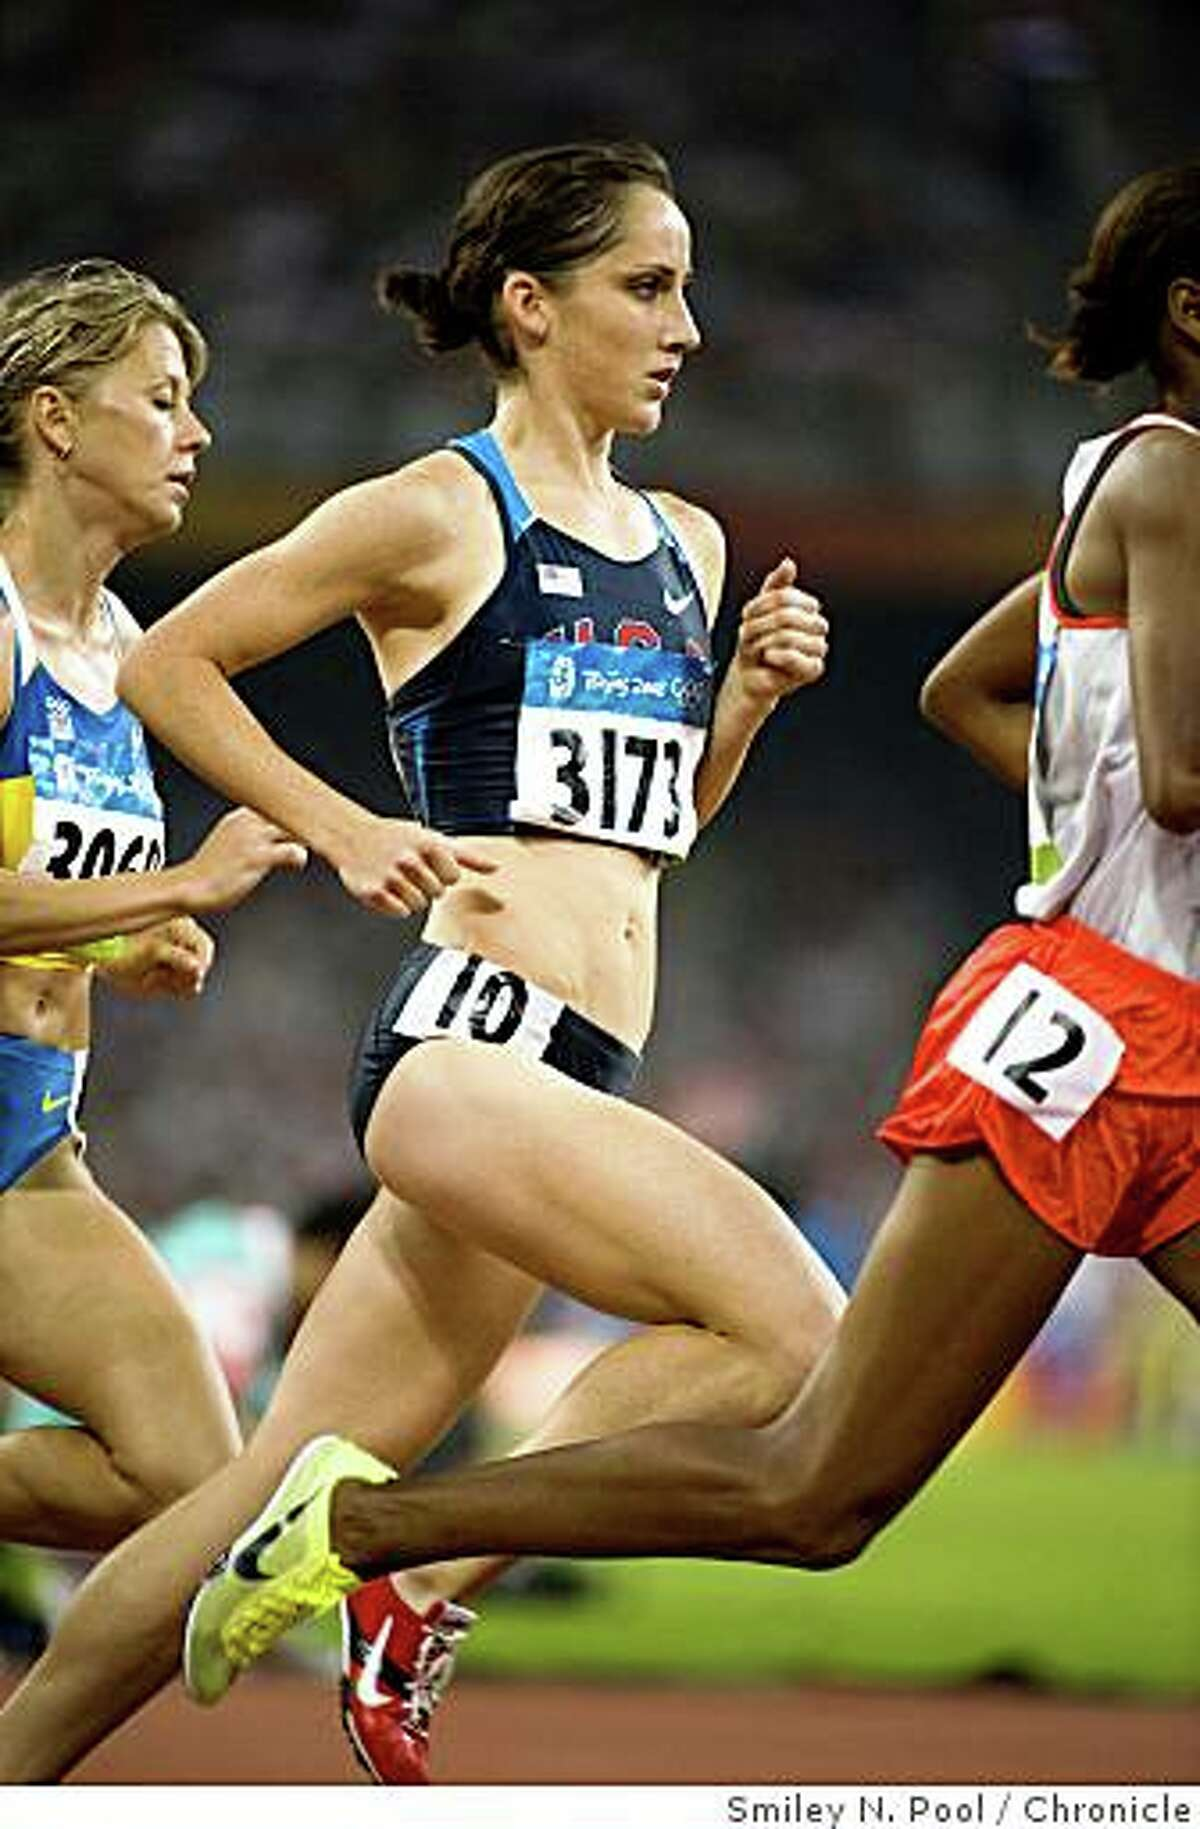 Shannon Rowbury of the United States (3173) competes in the women's 1500 meter run in athletics (track and field) at the 2008 Summer Olympic Games, Saturday, Aug. 23, 2008, in Beijing. ( Smiley N. Pool / Chronicle )